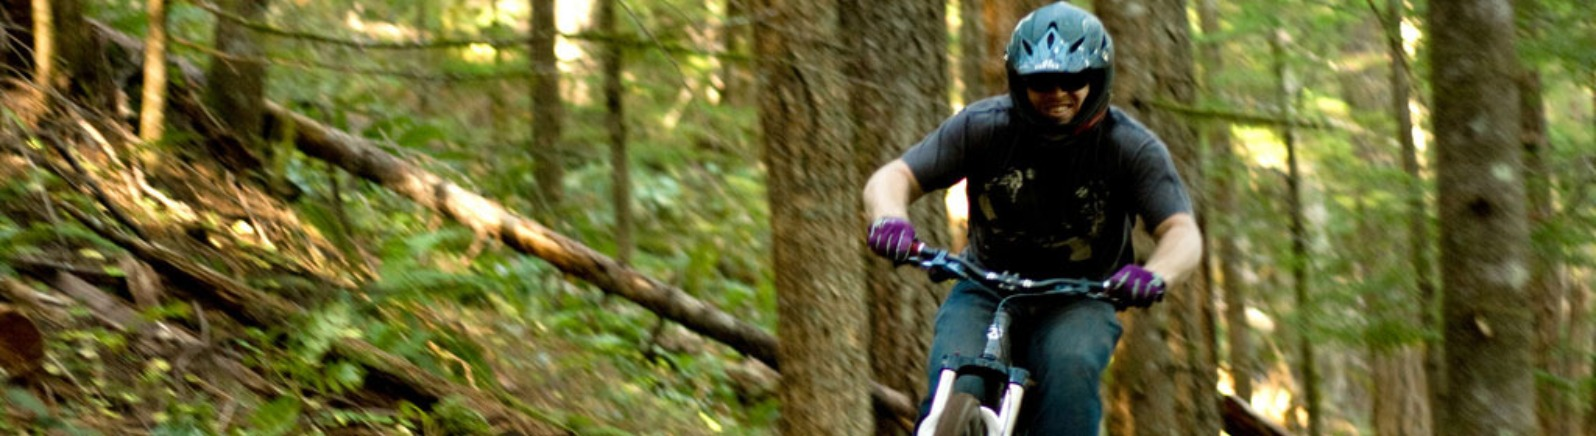 Mountain Biking, Sandy Ridge Trail